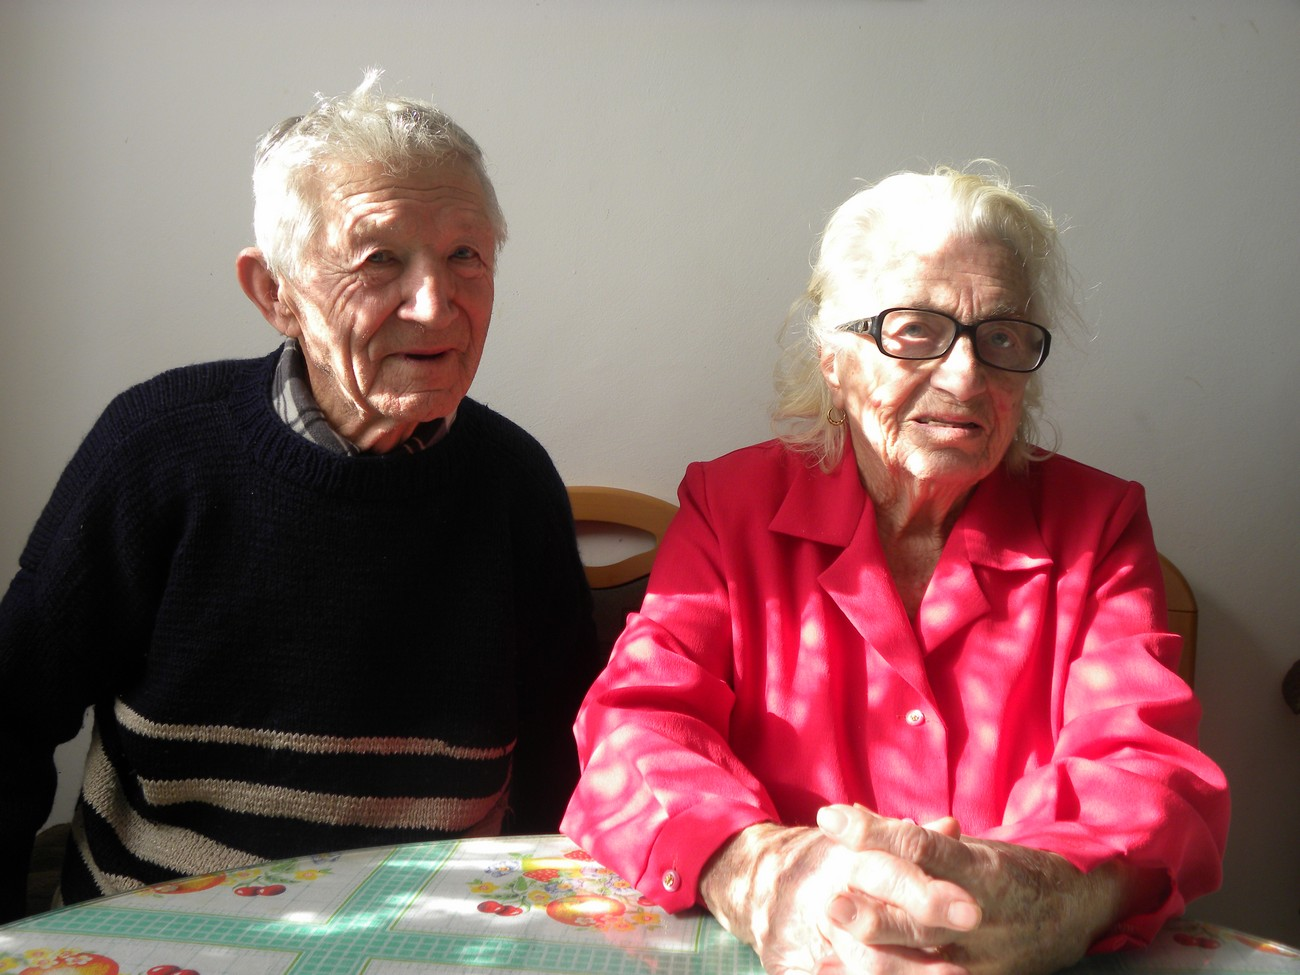 Mihael (born 1932) and Ana Rukše (born 1928) remember that Germans were the first to arrive in Gabrje in April 1941. Some of the locals ordered all the houses in the village to hang out German flags. Two triumphal arches were set up and two maypoles with a board between them inscribed with »Heil Hitler«. The people of Gabrje did that in fear of what was to come. People were asked to greet the Germans especially by those who had worked in Germany before the war, where they earned enough money to enable a better life for their families at home. They thought that once these parts were occupied by Germans, the people would get jobs and better living conditions. They soon realised that was not the case and the people of Gabrje started supporting the Partisans. Partisan units often stayed in the village and its surroundings during the war. Author: Blaž Štangelj.